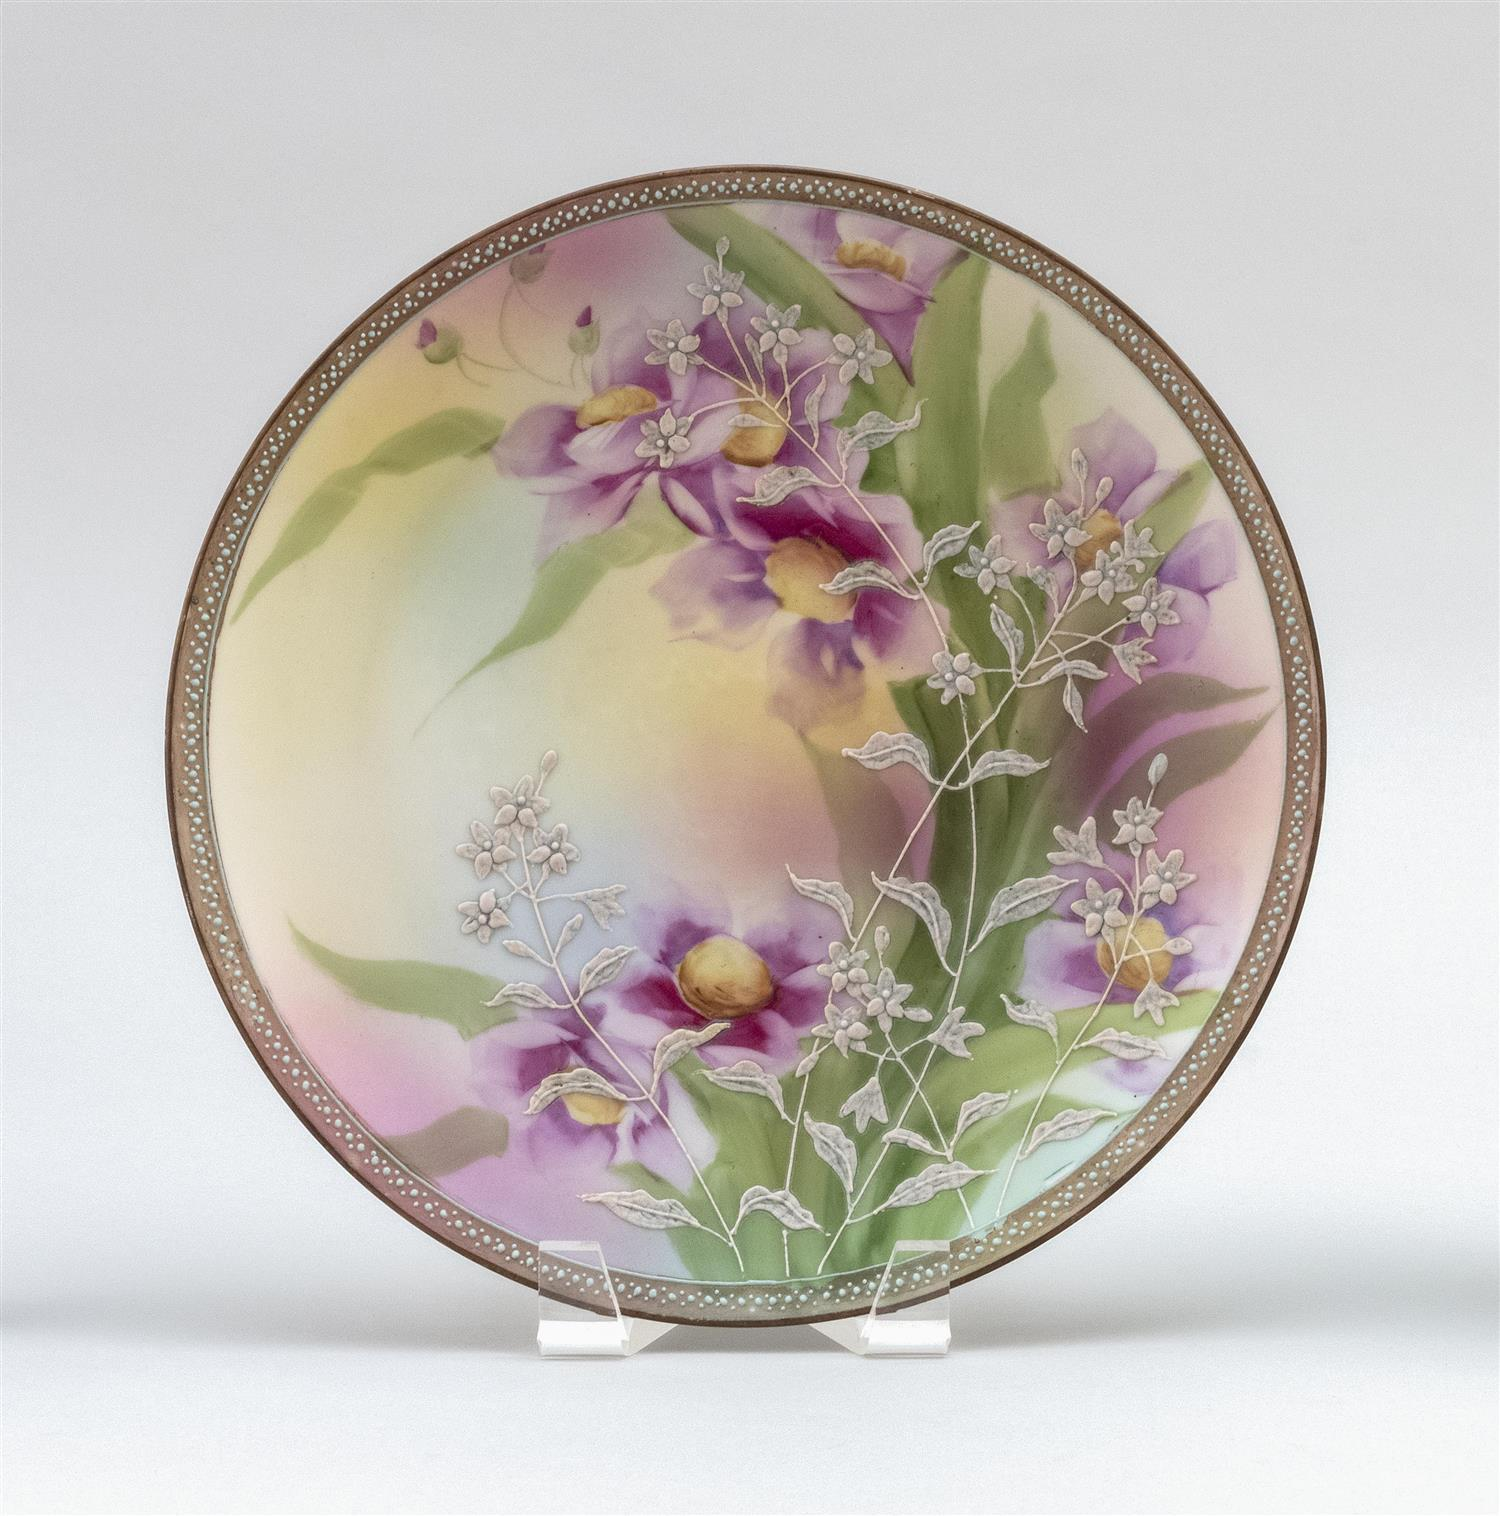 "MORIAGE NIPPON PORCELAIN PLAQUE With a floral design on a purple floral-patterned ground. Van Patten #52 mark on base. Diameter 10""."